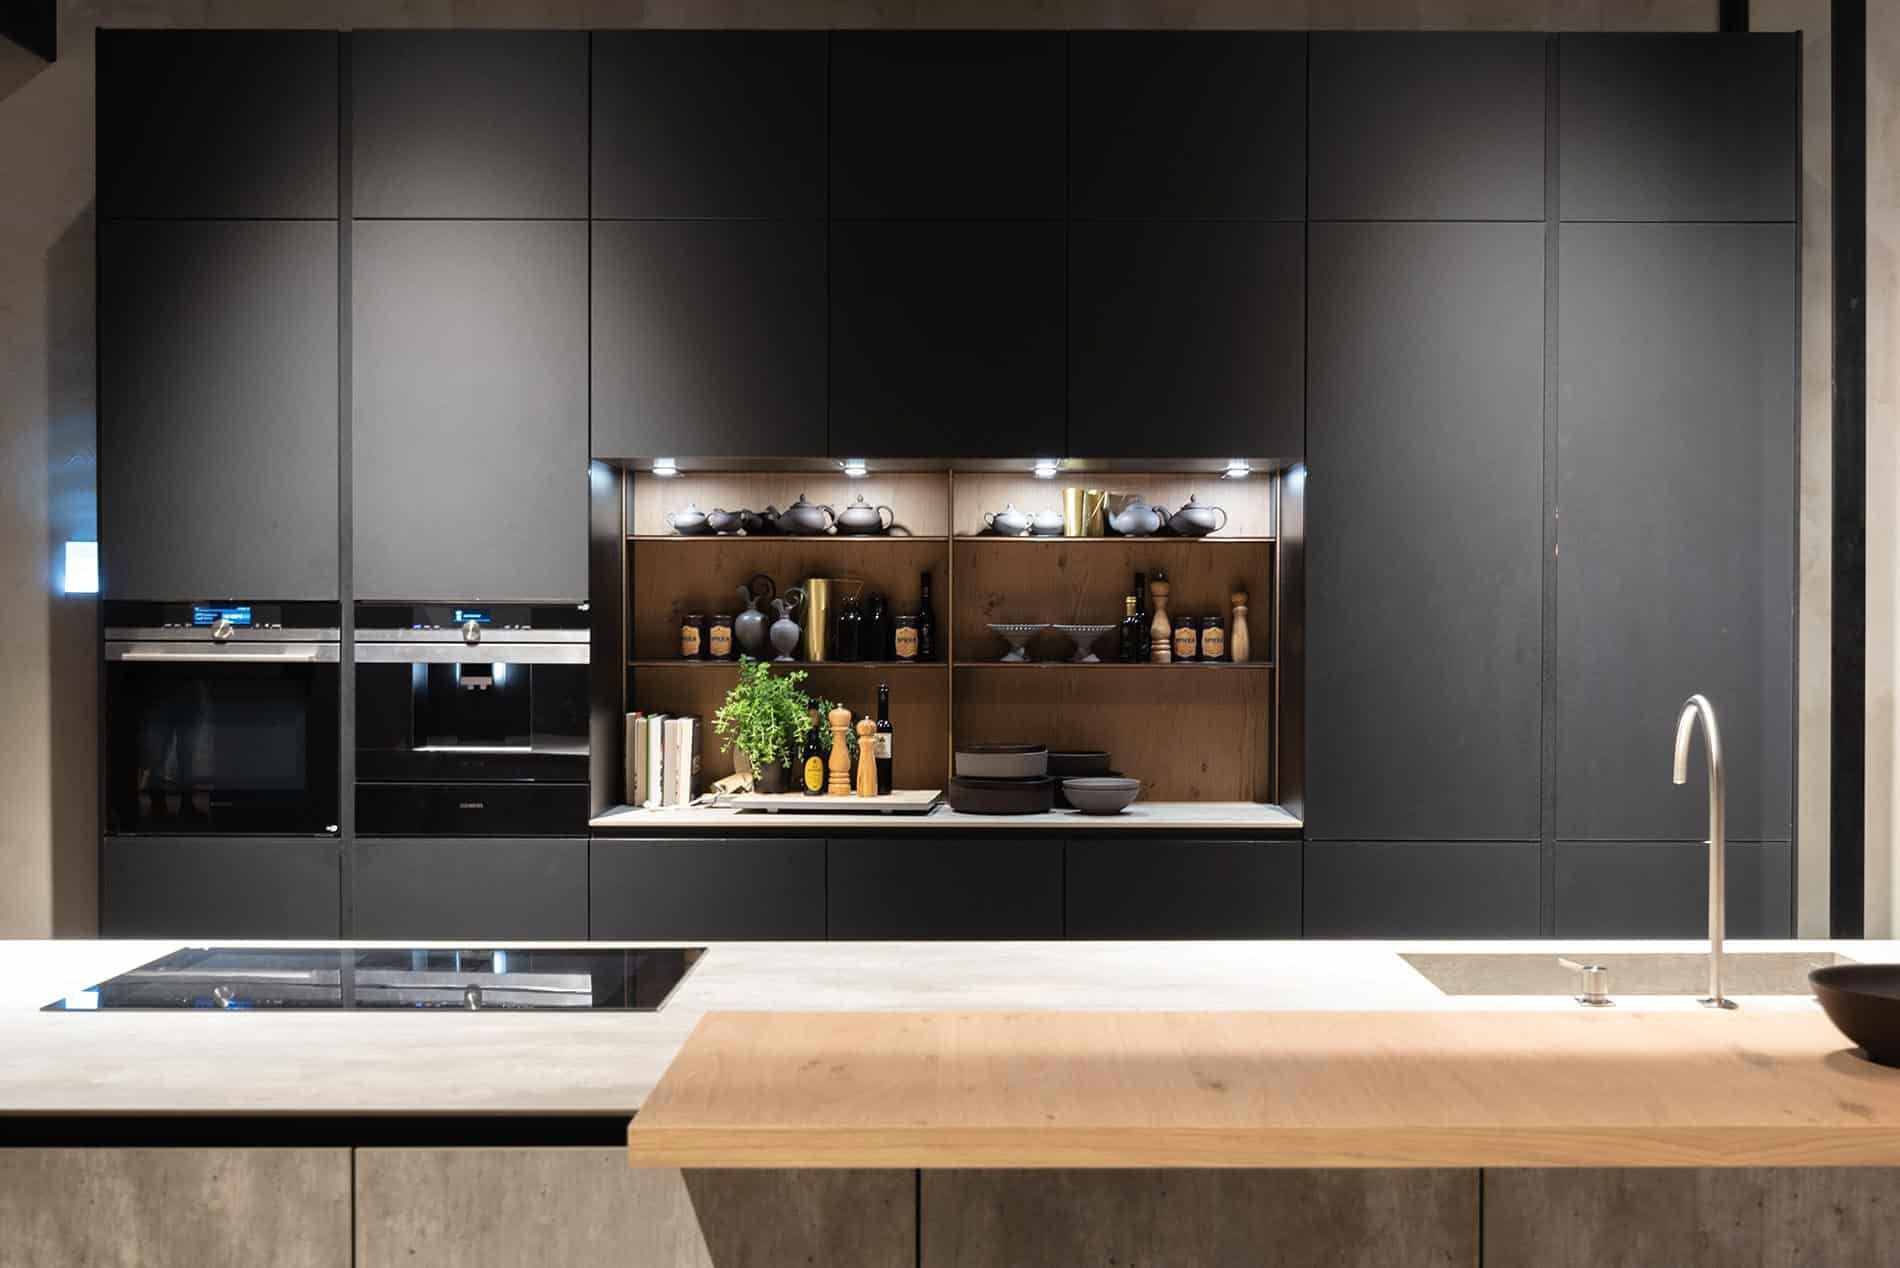 Glass shutters Stosa Cucine Salone del Mobile 2018 in 2019 ...